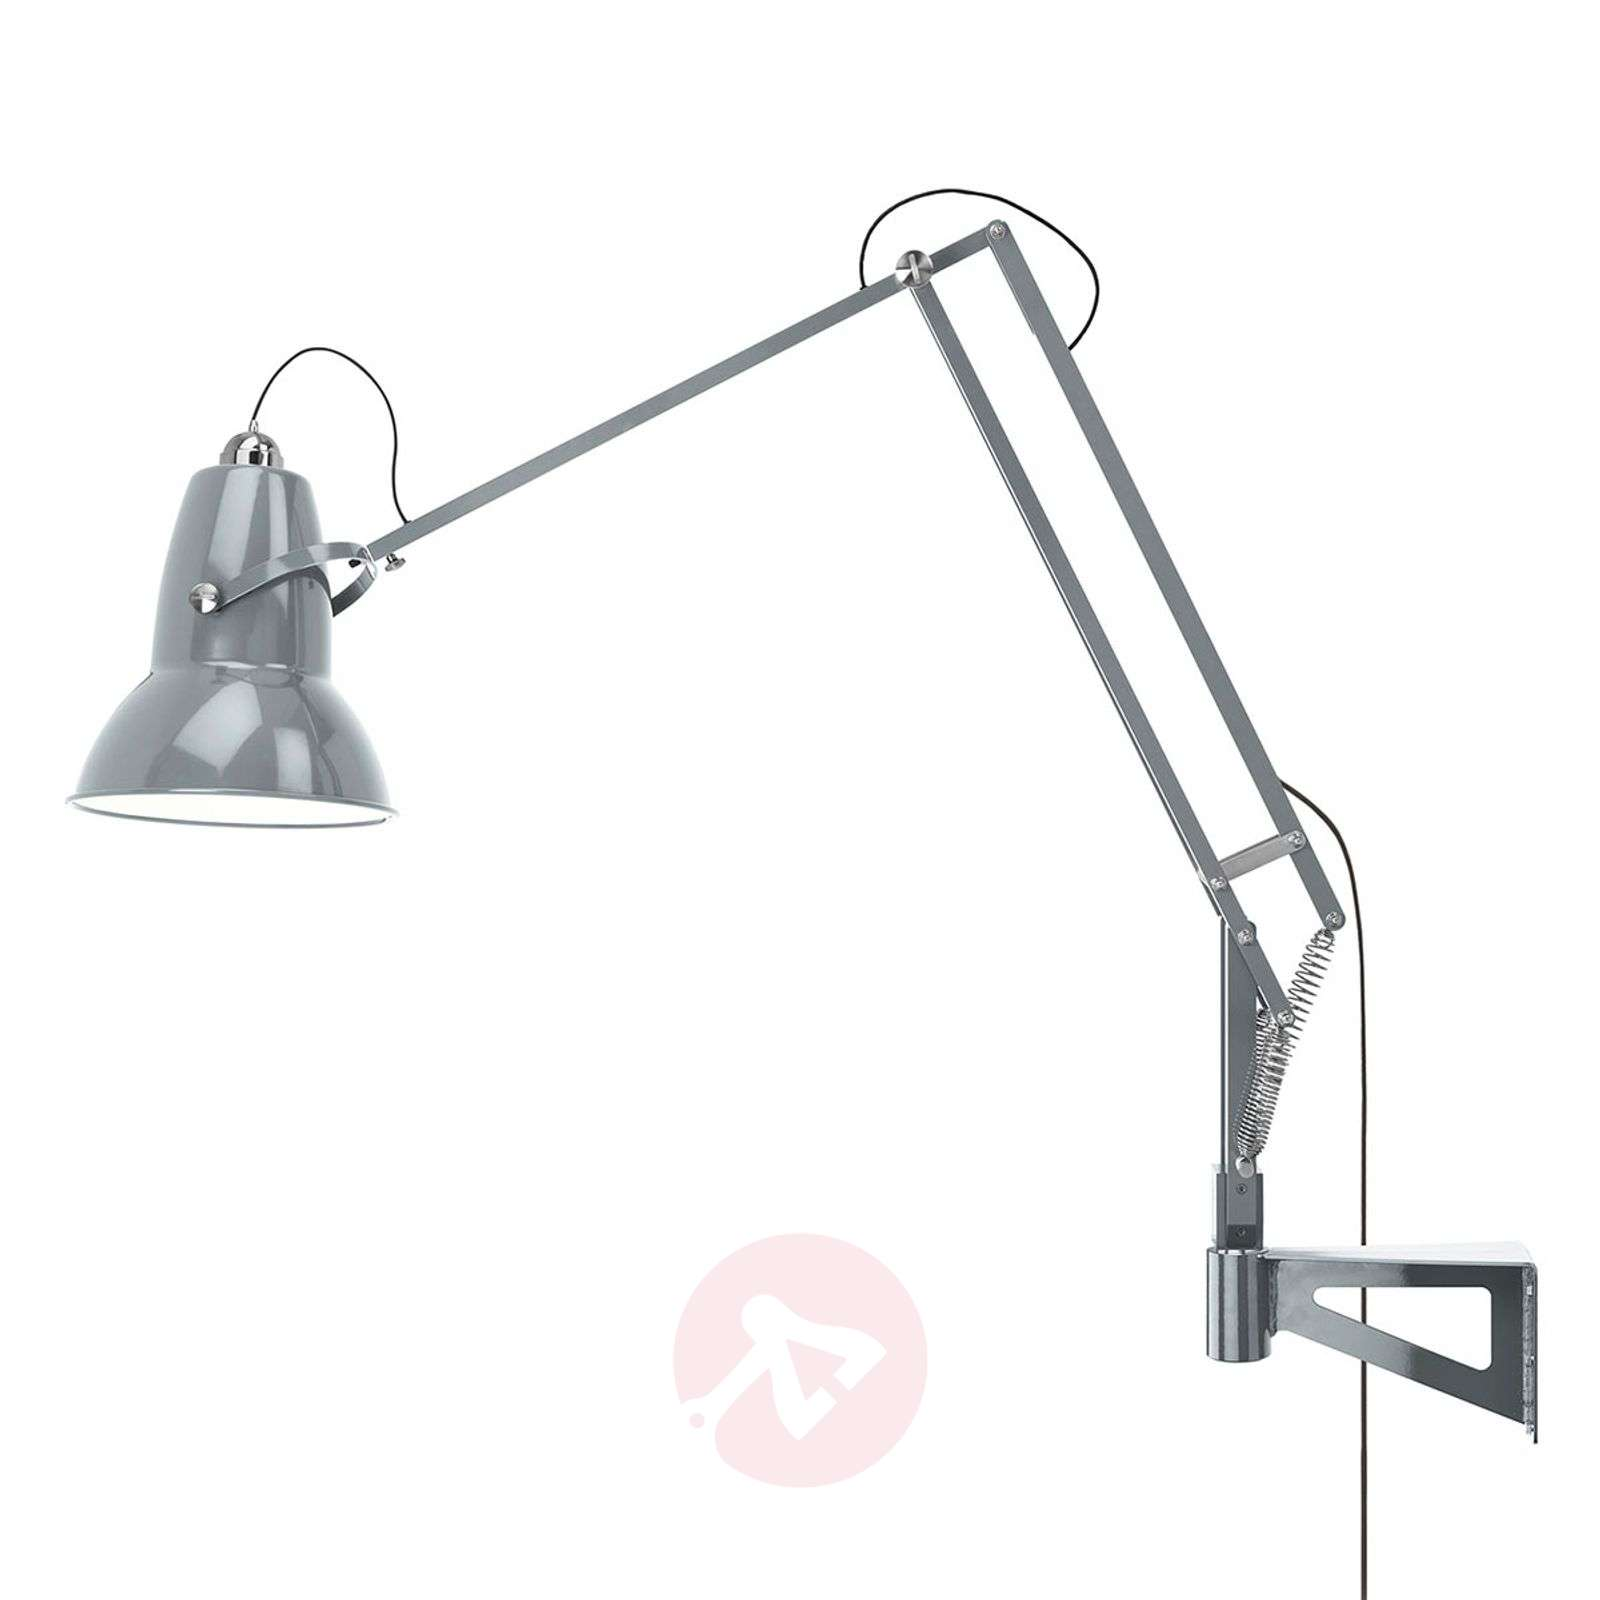 Anglepoise® Original 1227 Giant IP65 wall lamp-1073053X-01